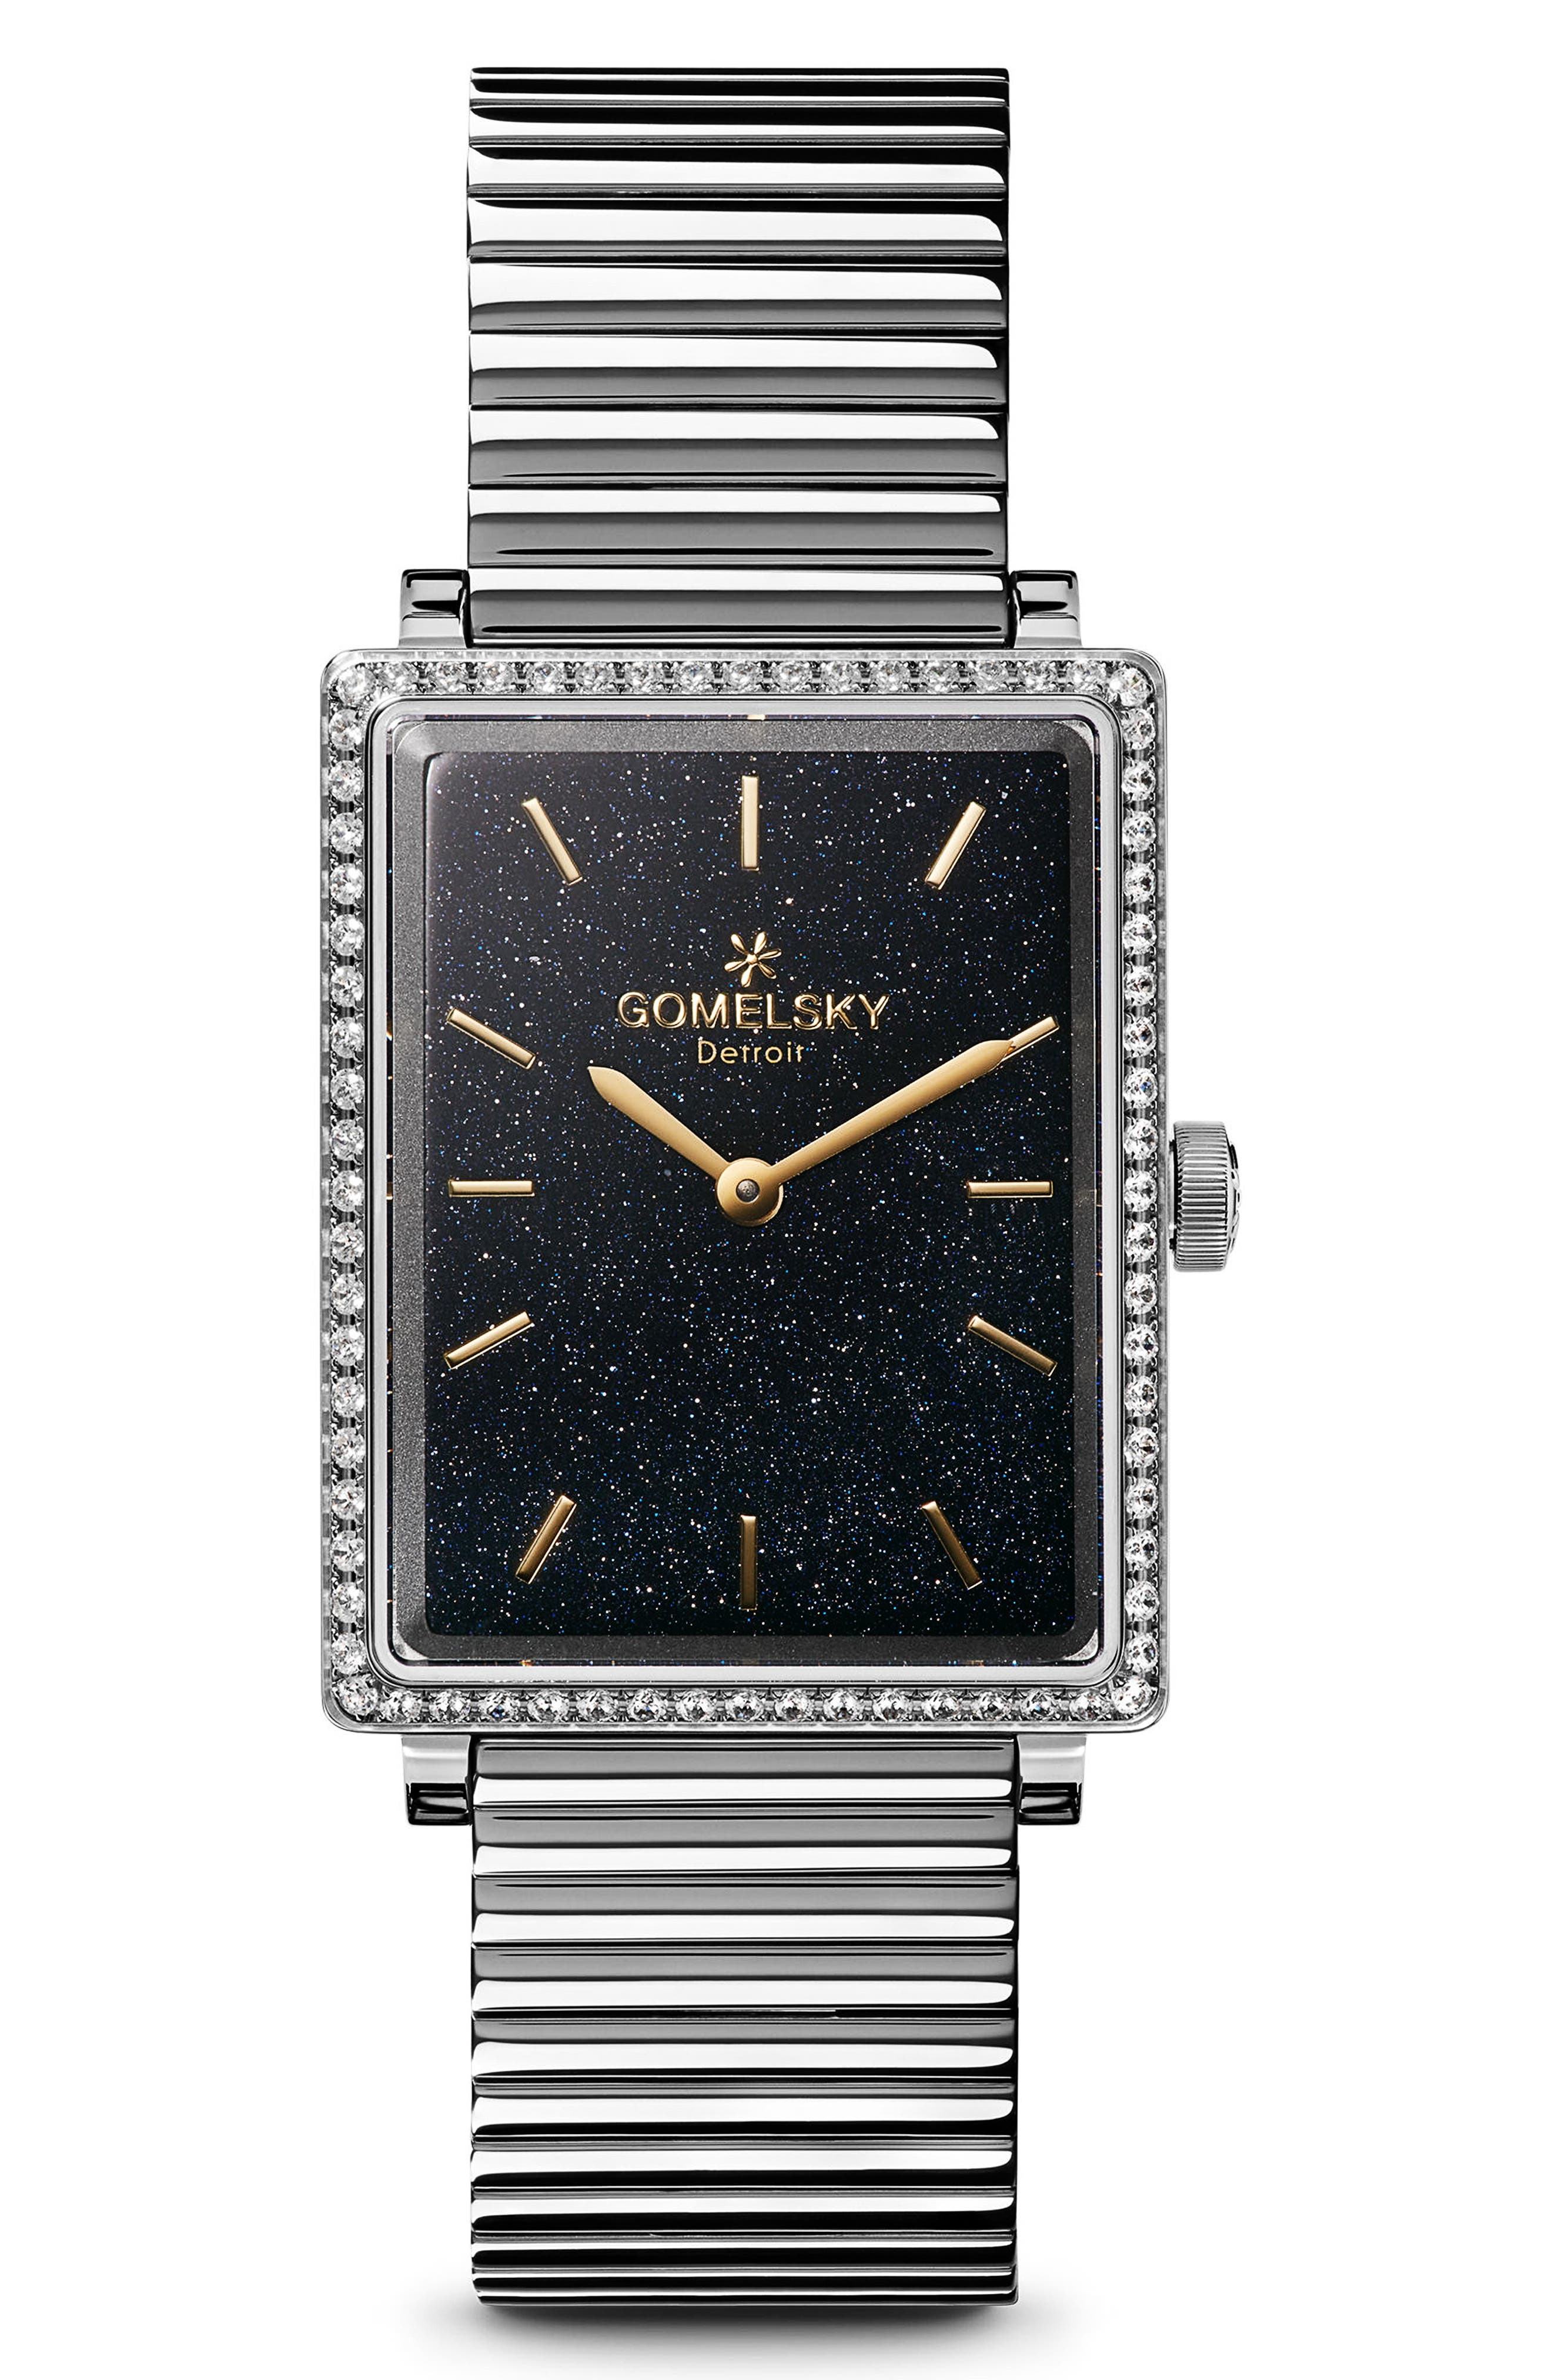 Main Image - Gomelsky The Shirley Fromer Diamond Bracelet Watch, 32mm x 25mm